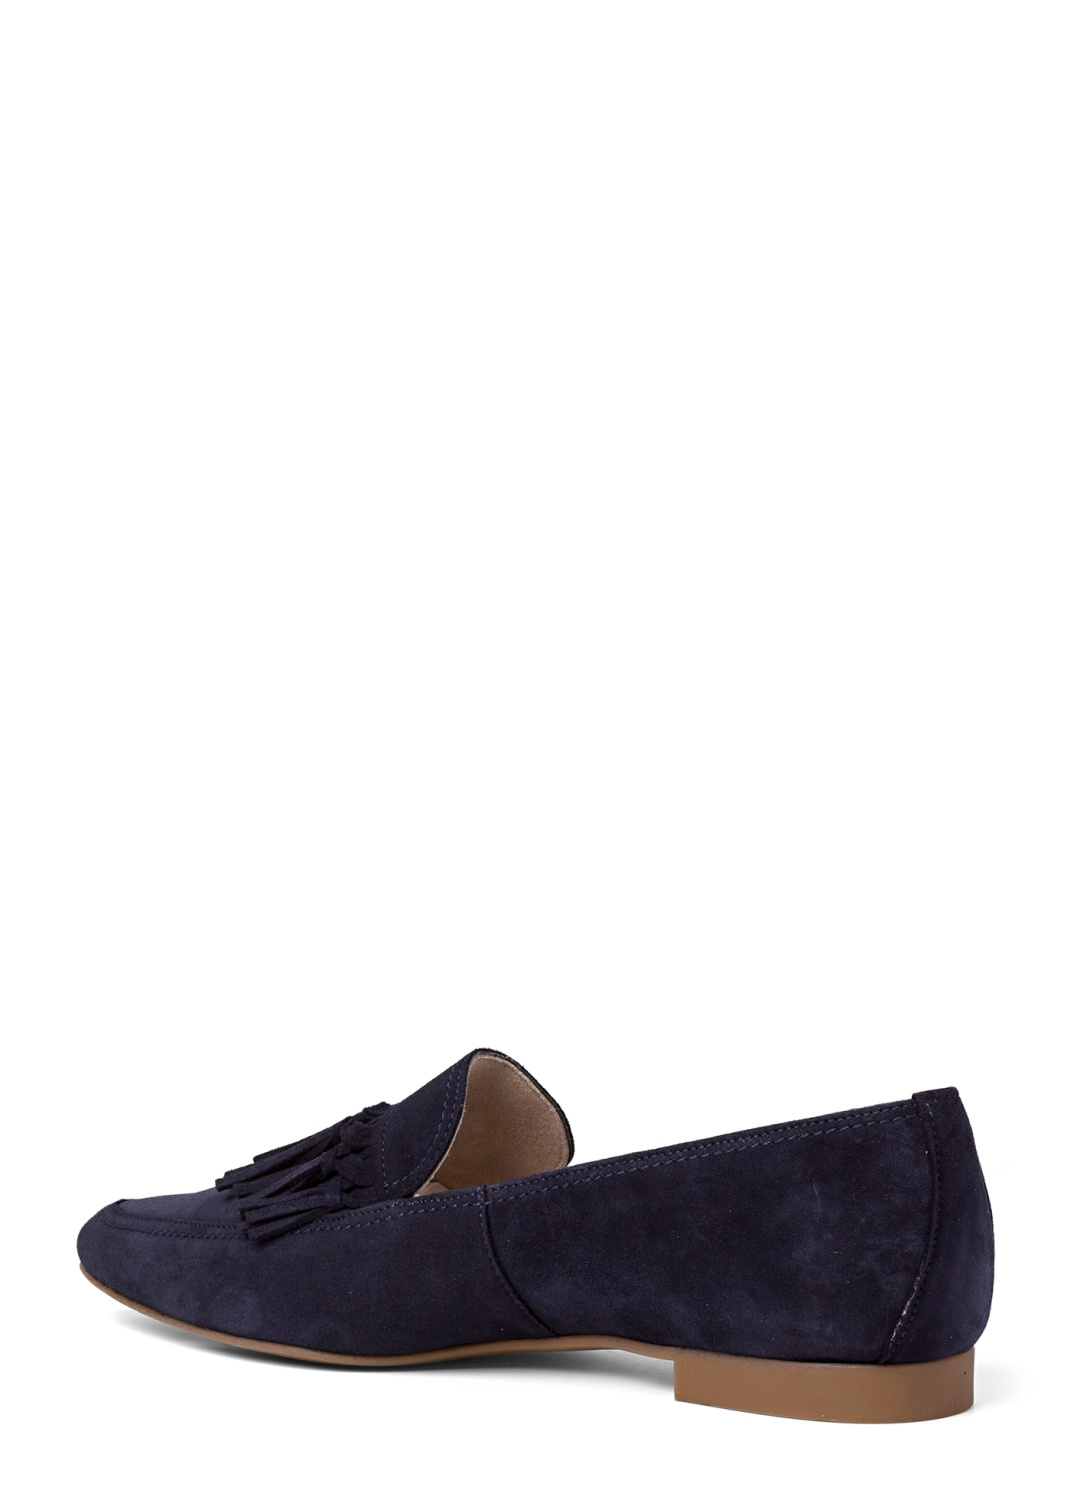 14_Pointy Loafer Tasseln Suede image number 2